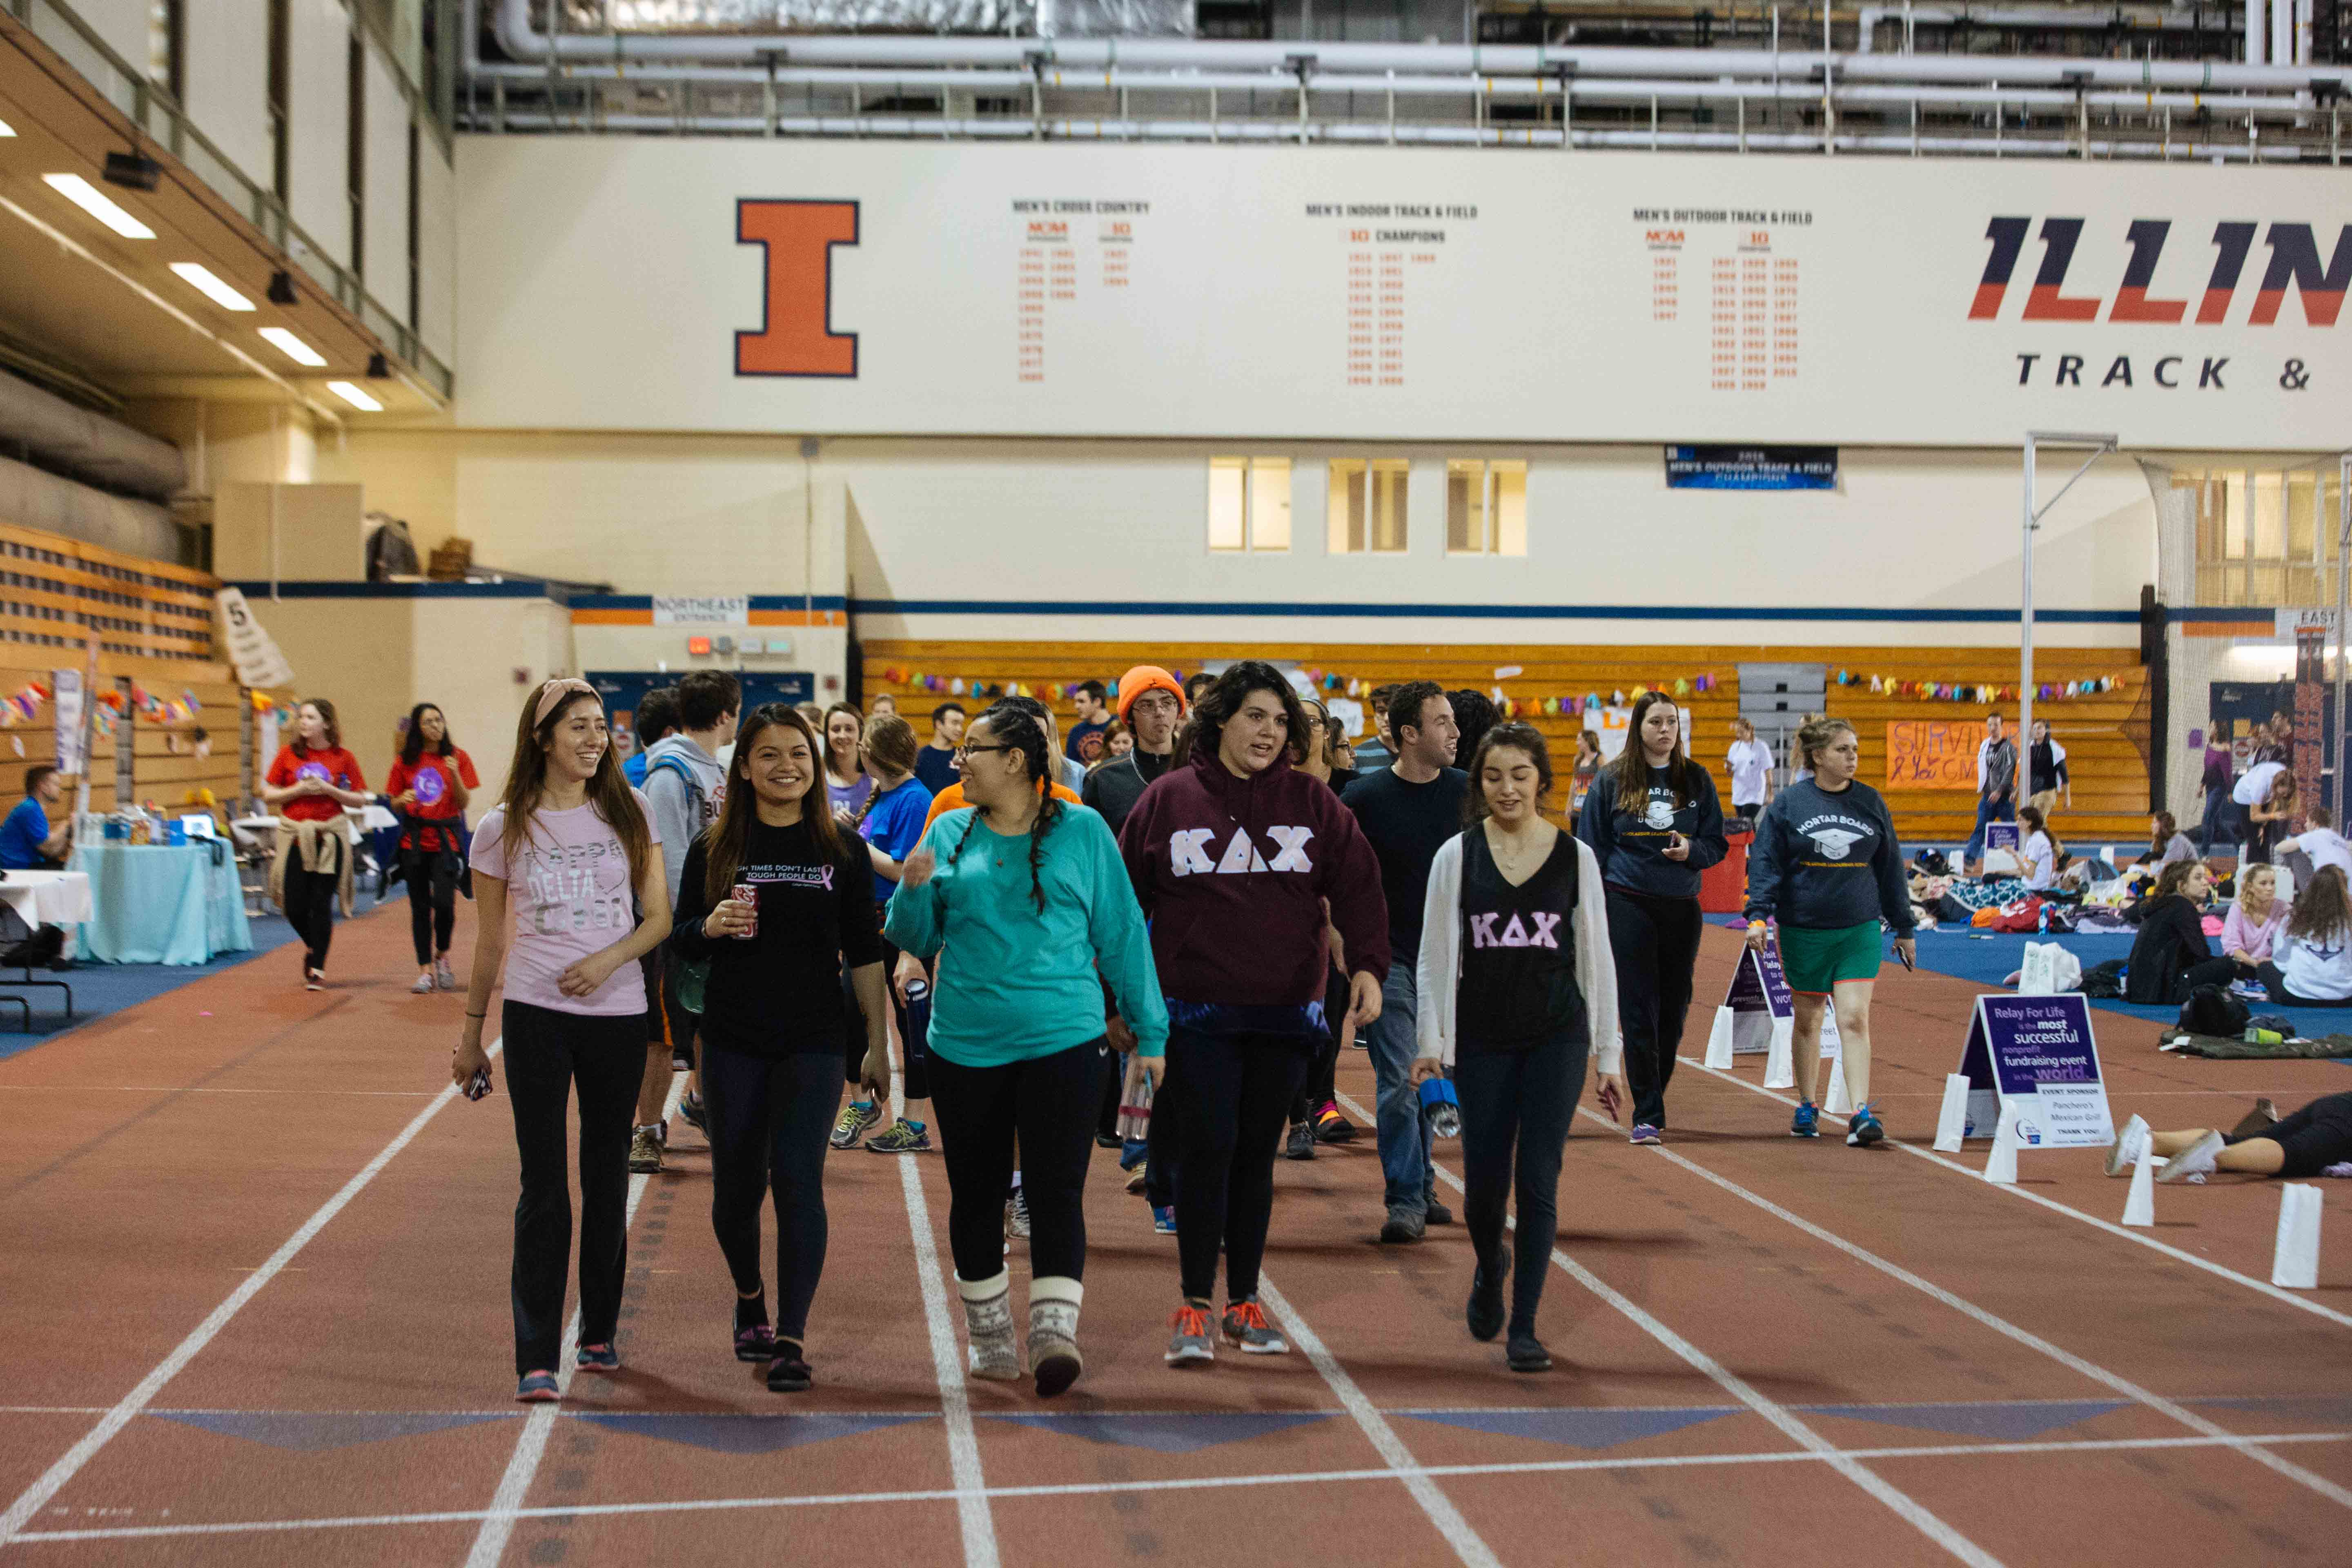 Students at the University attend the annual Relay for Life to fight against cancer at the Armory.